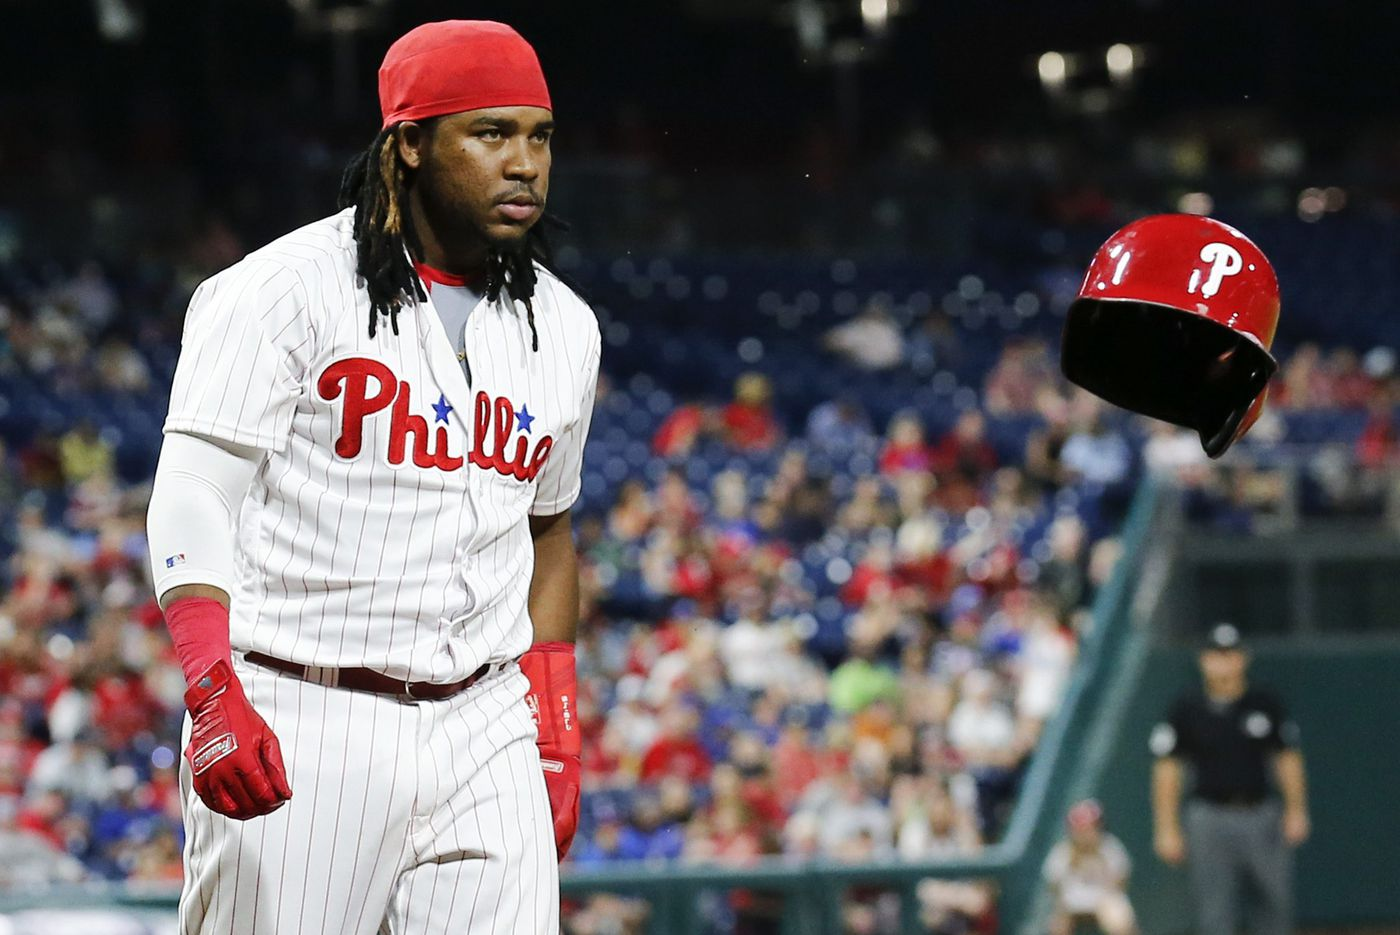 Phillies have seemed to shift Maikel Franco to a platoon role